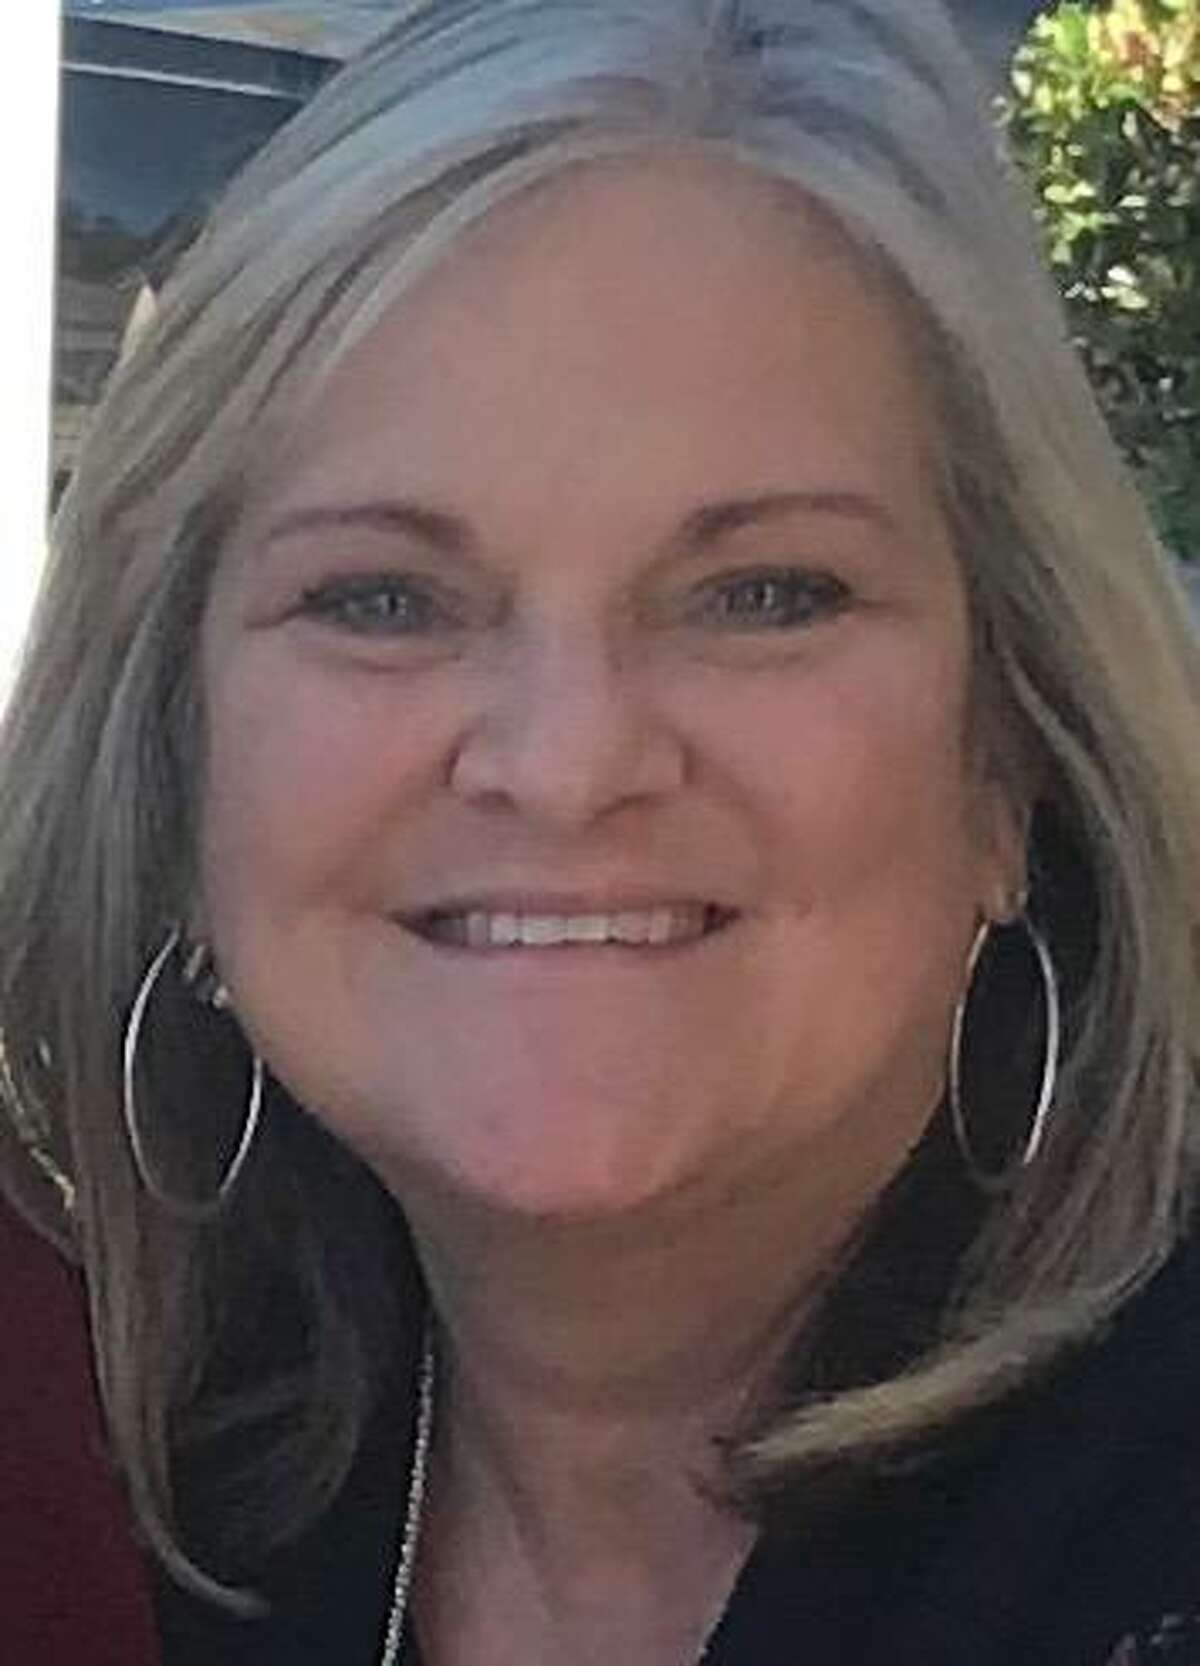 Shirley Dupree is retiring at the end of the 2019-2020 school year after a decades-long career in education, the past 27 years of which have come in Huffman ISD